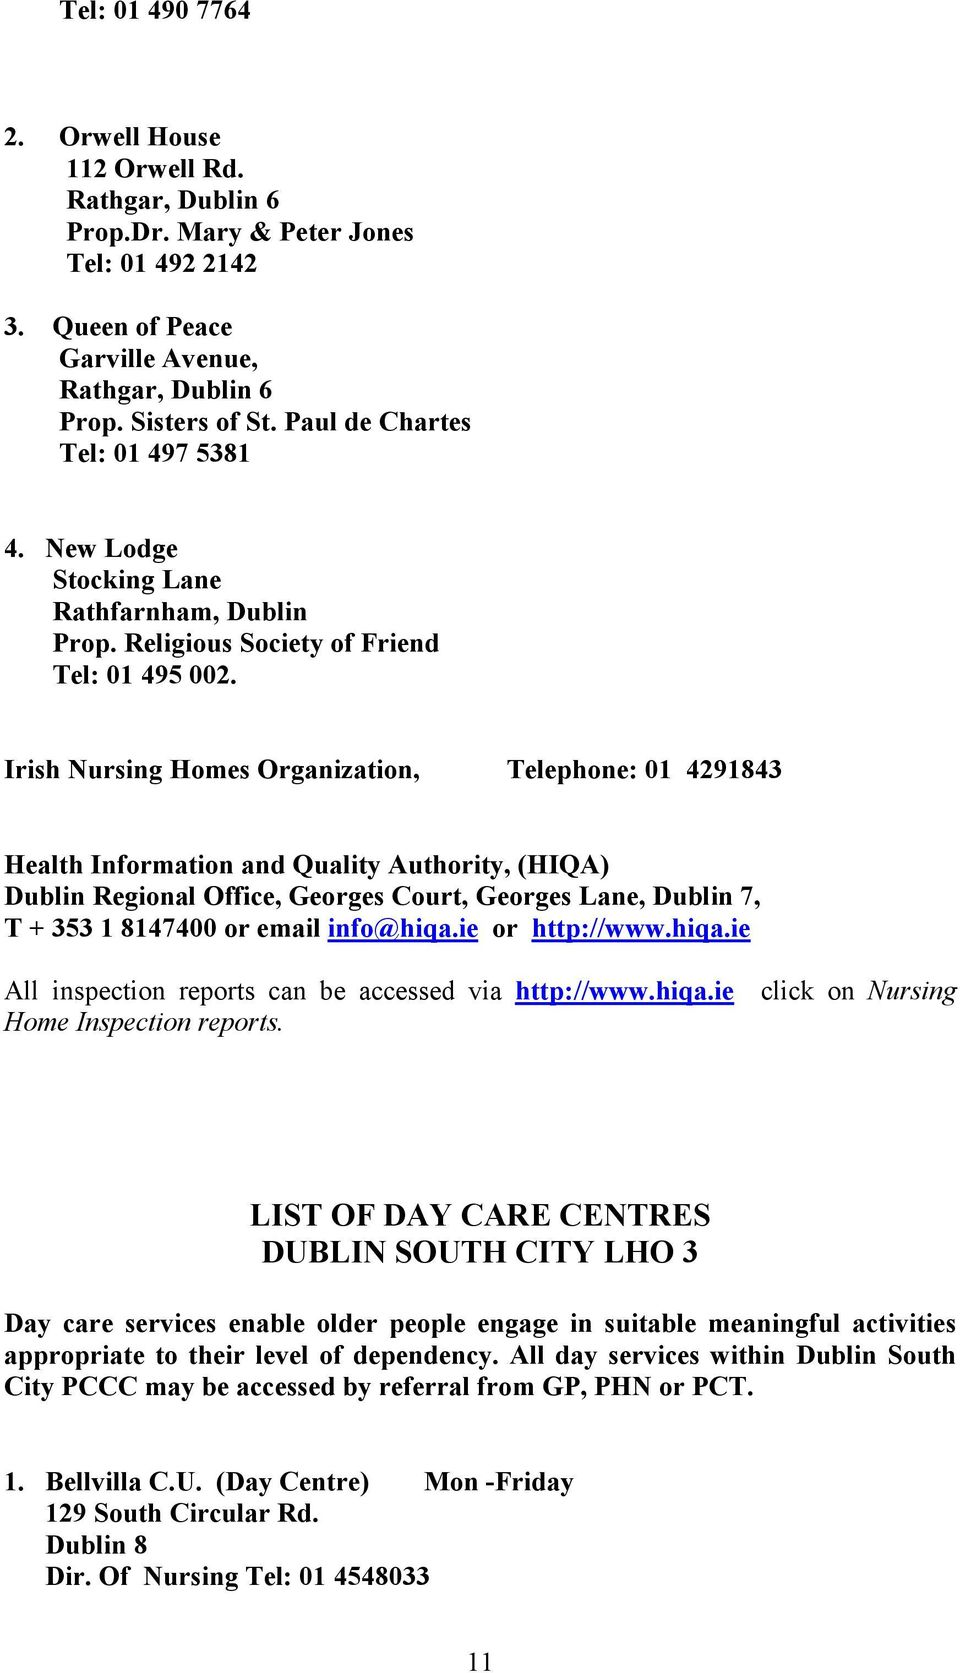 Irish Nursing Homes Organization, Telephone: 01 4291843 Health Information and Quality Authority, (HIQA) Dublin Regional Office, Georges Court, Georges Lane, Dublin 7, T + 353 1 8147400 or email